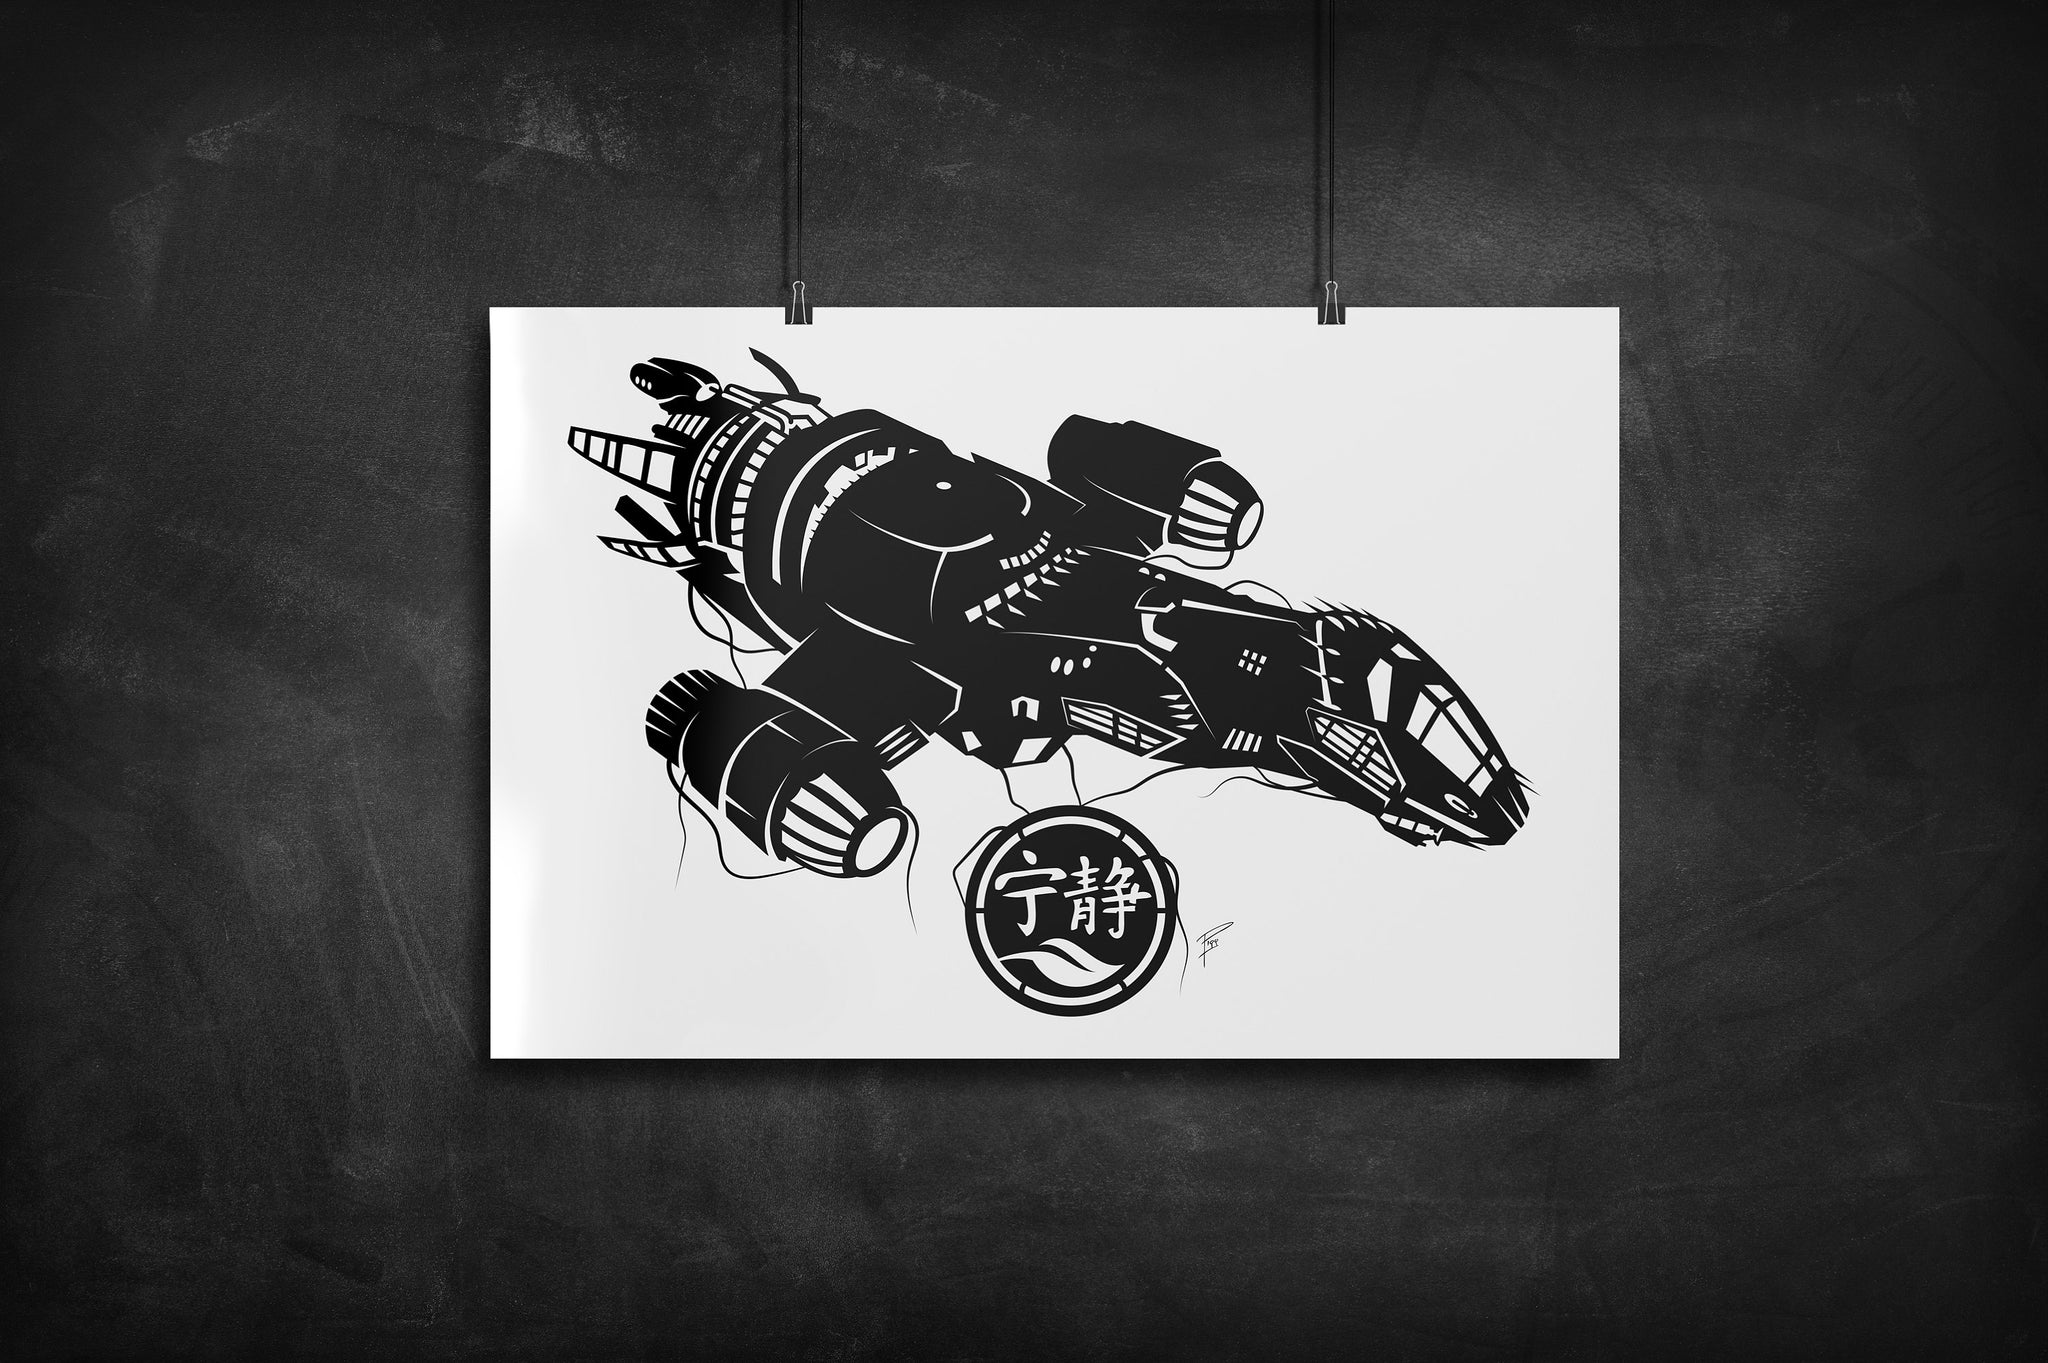 Firefly - Serenity silhouette art print